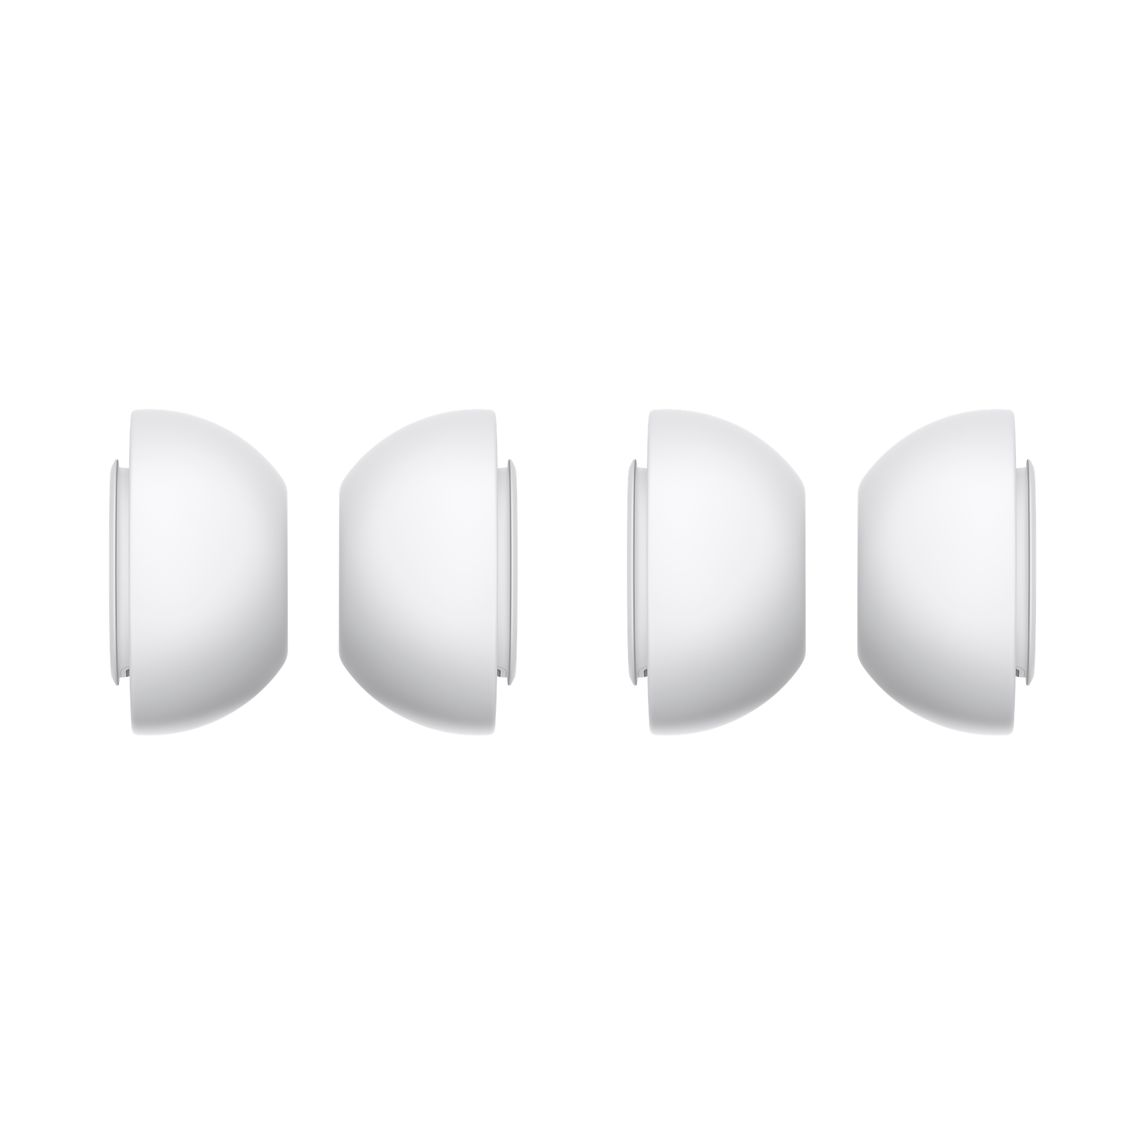 Airpods Pro Ear Tips 2 Sets Large Apple